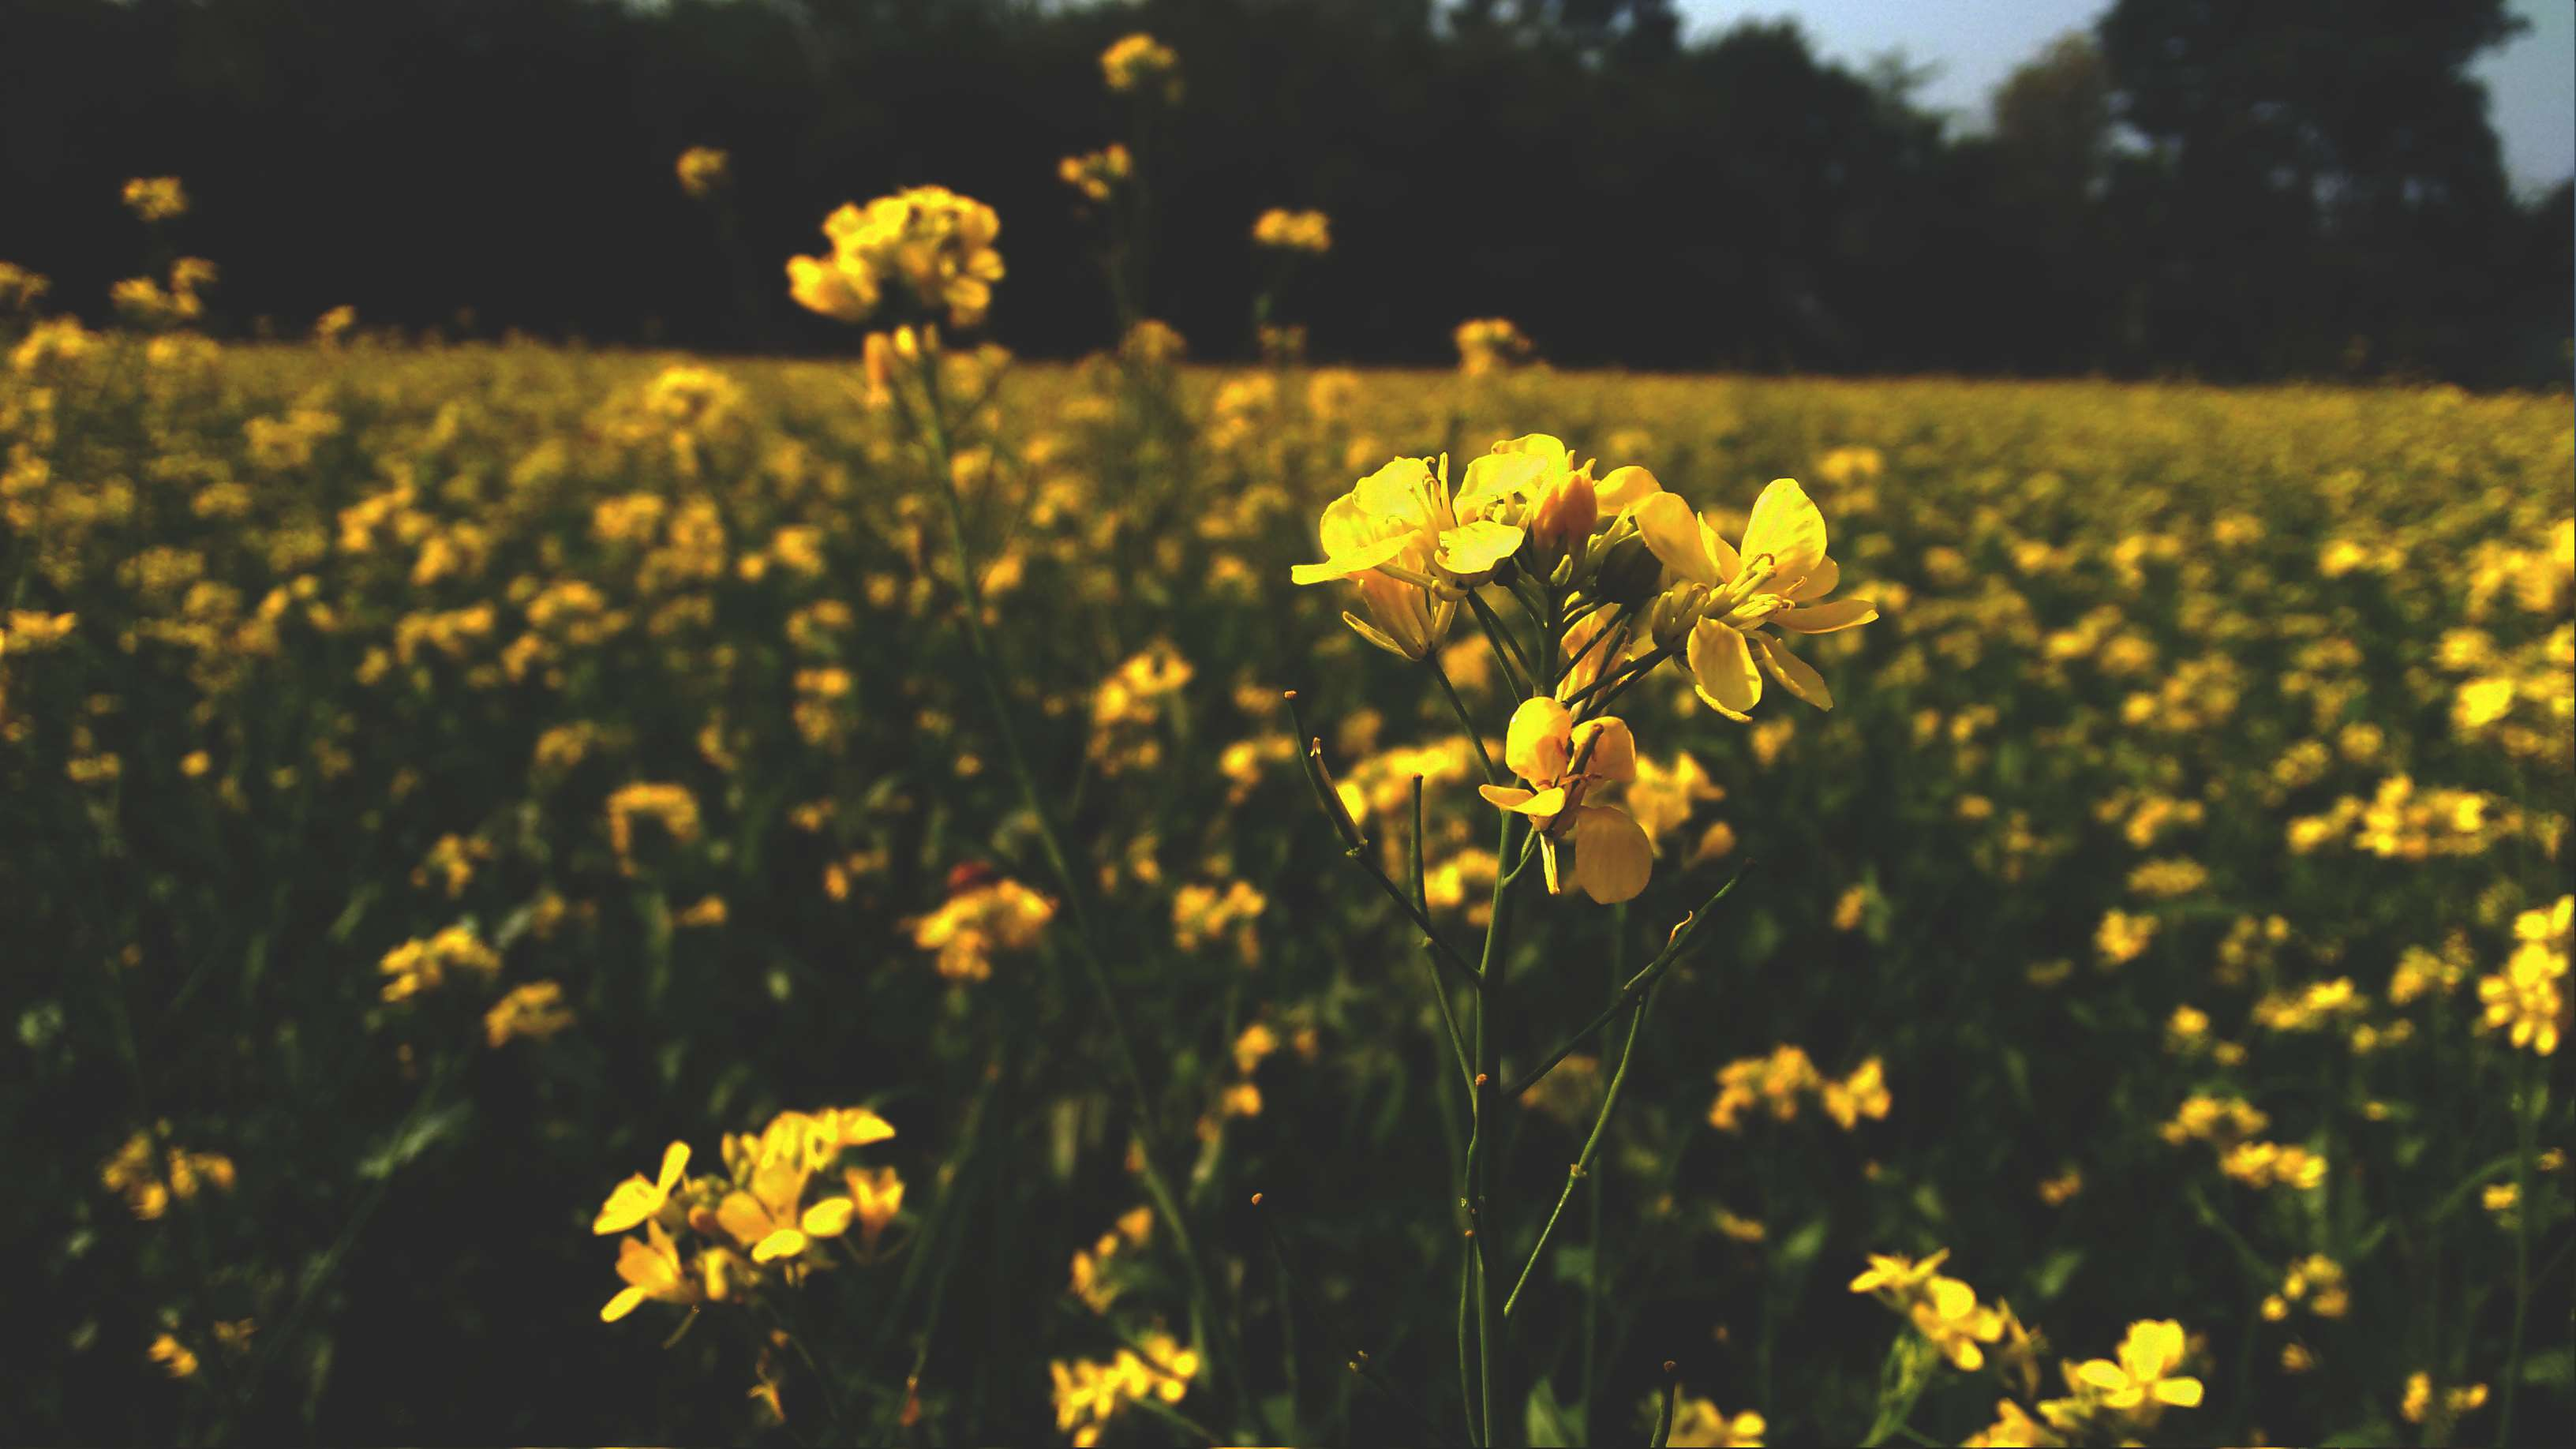 Awesome Dark Flower Focused Green Musted Sky Yellow